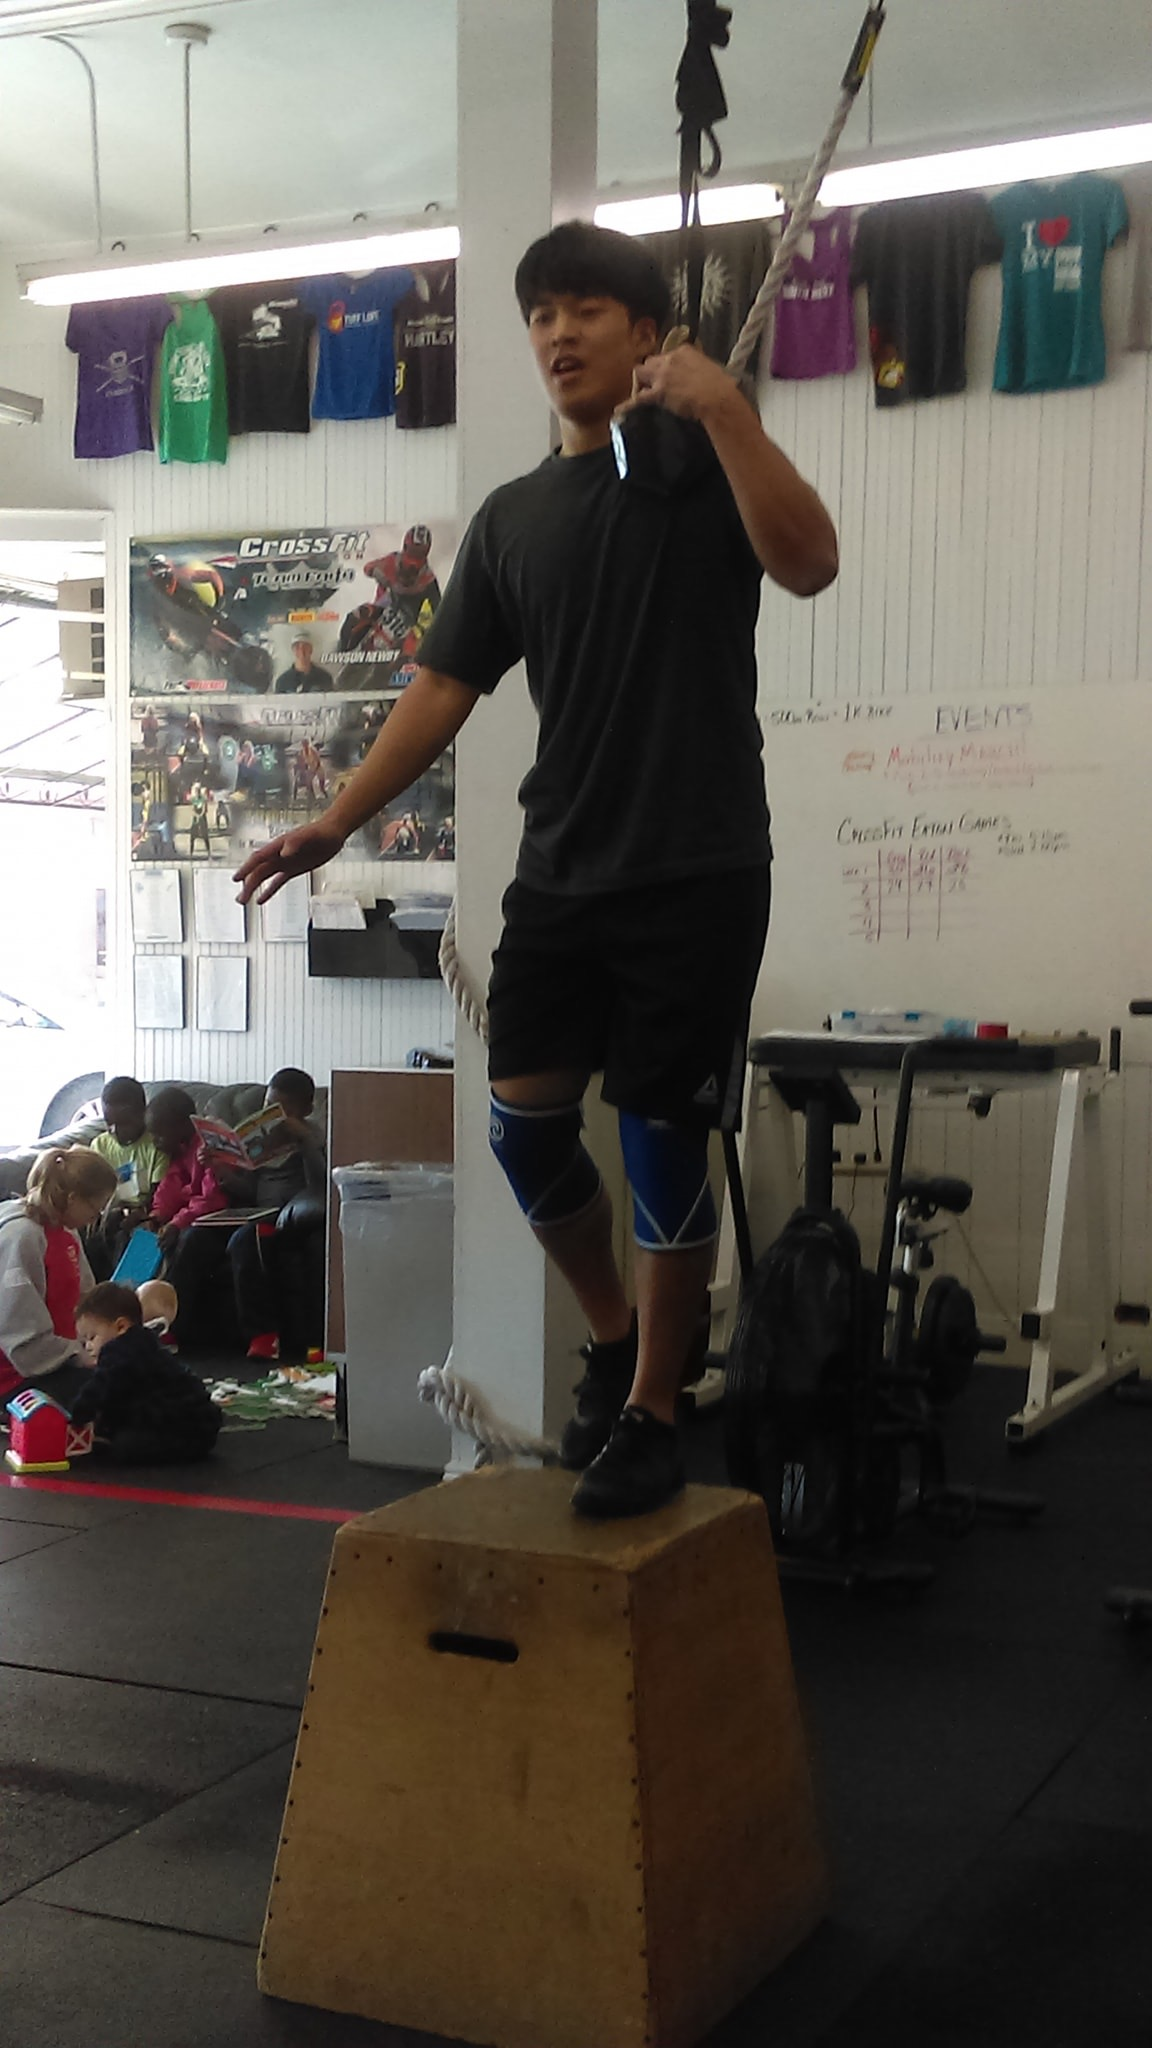 James busting out those weighted step ups like a boss!